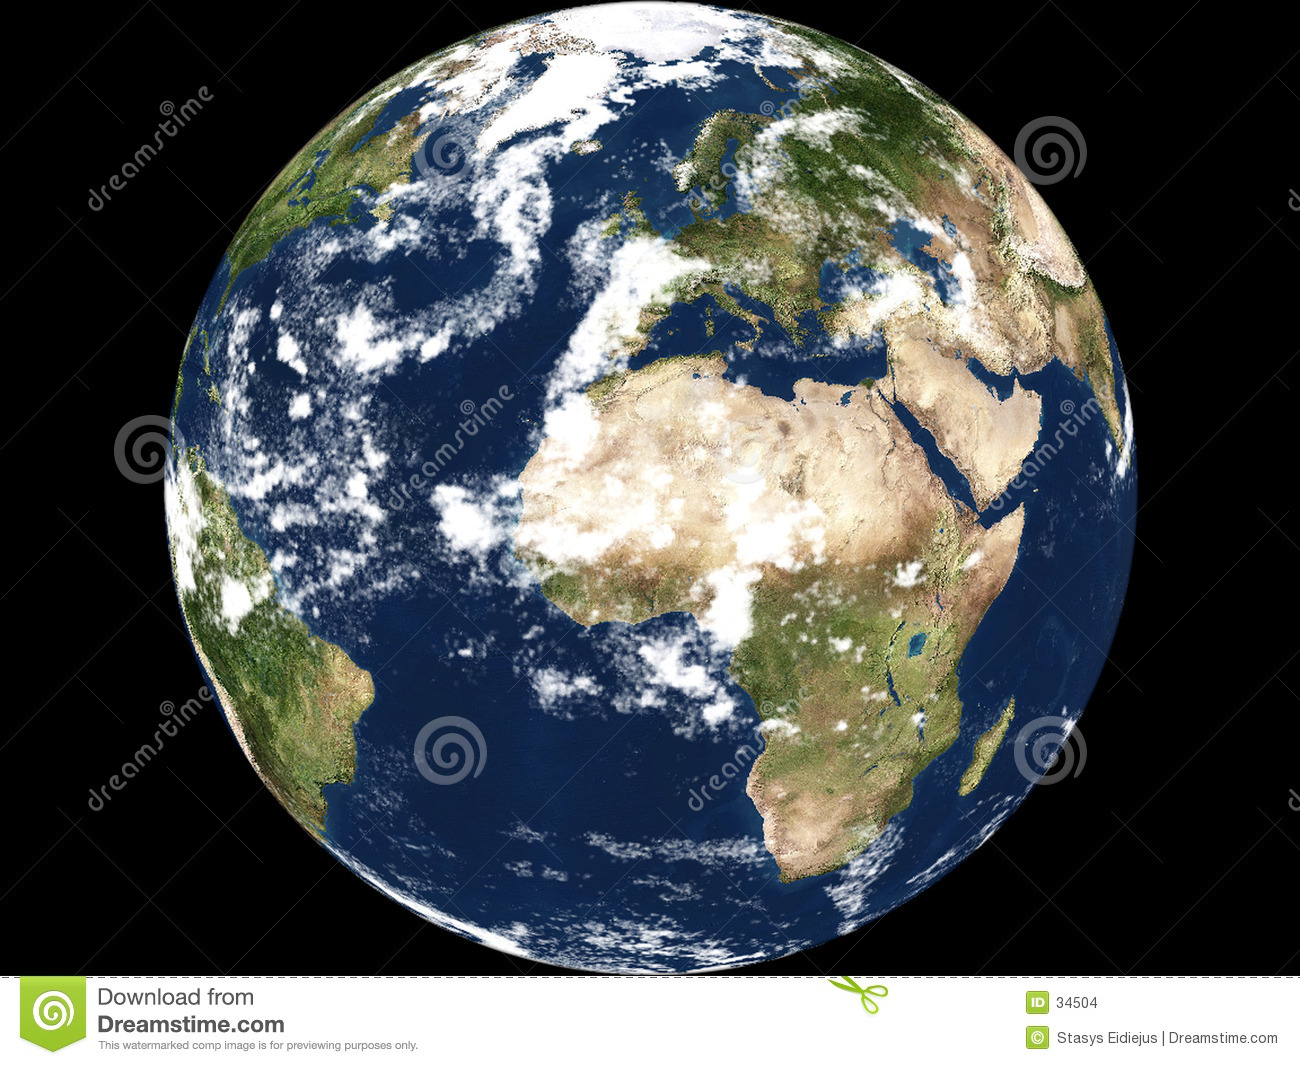 Earth view - Africa